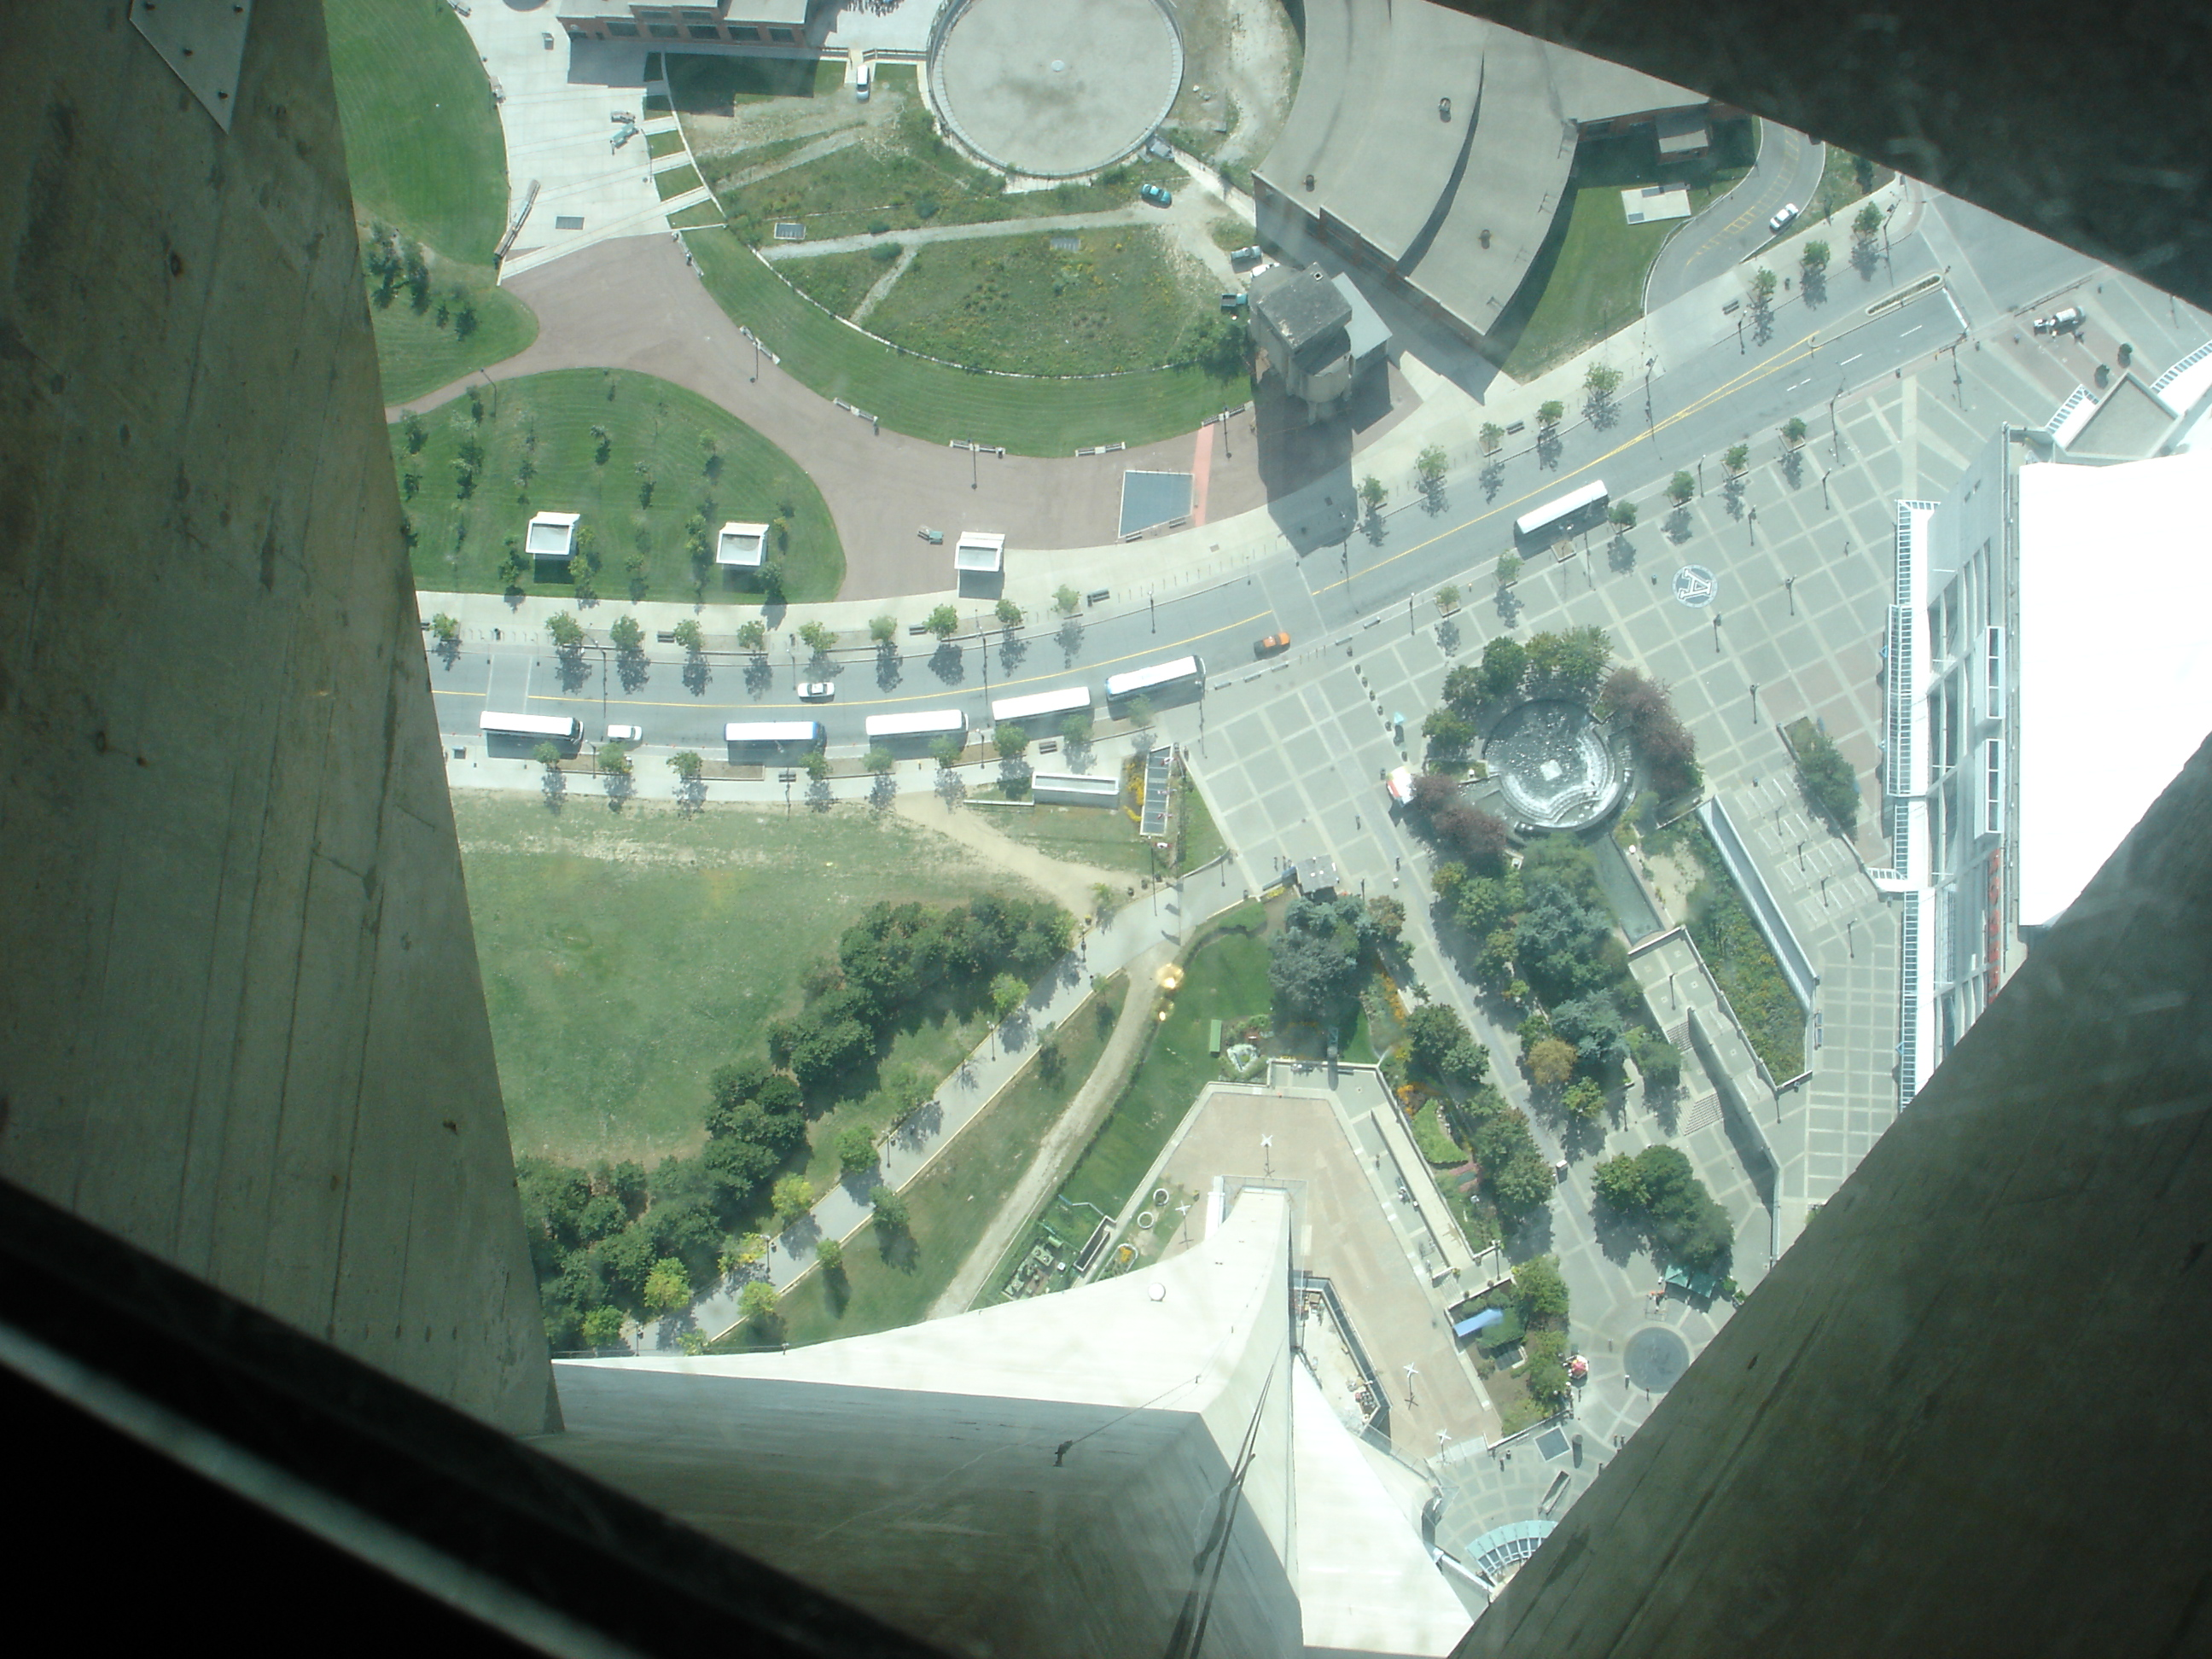 Infotainment seven places to avoid if you hate heights for How many floors in the cn tower